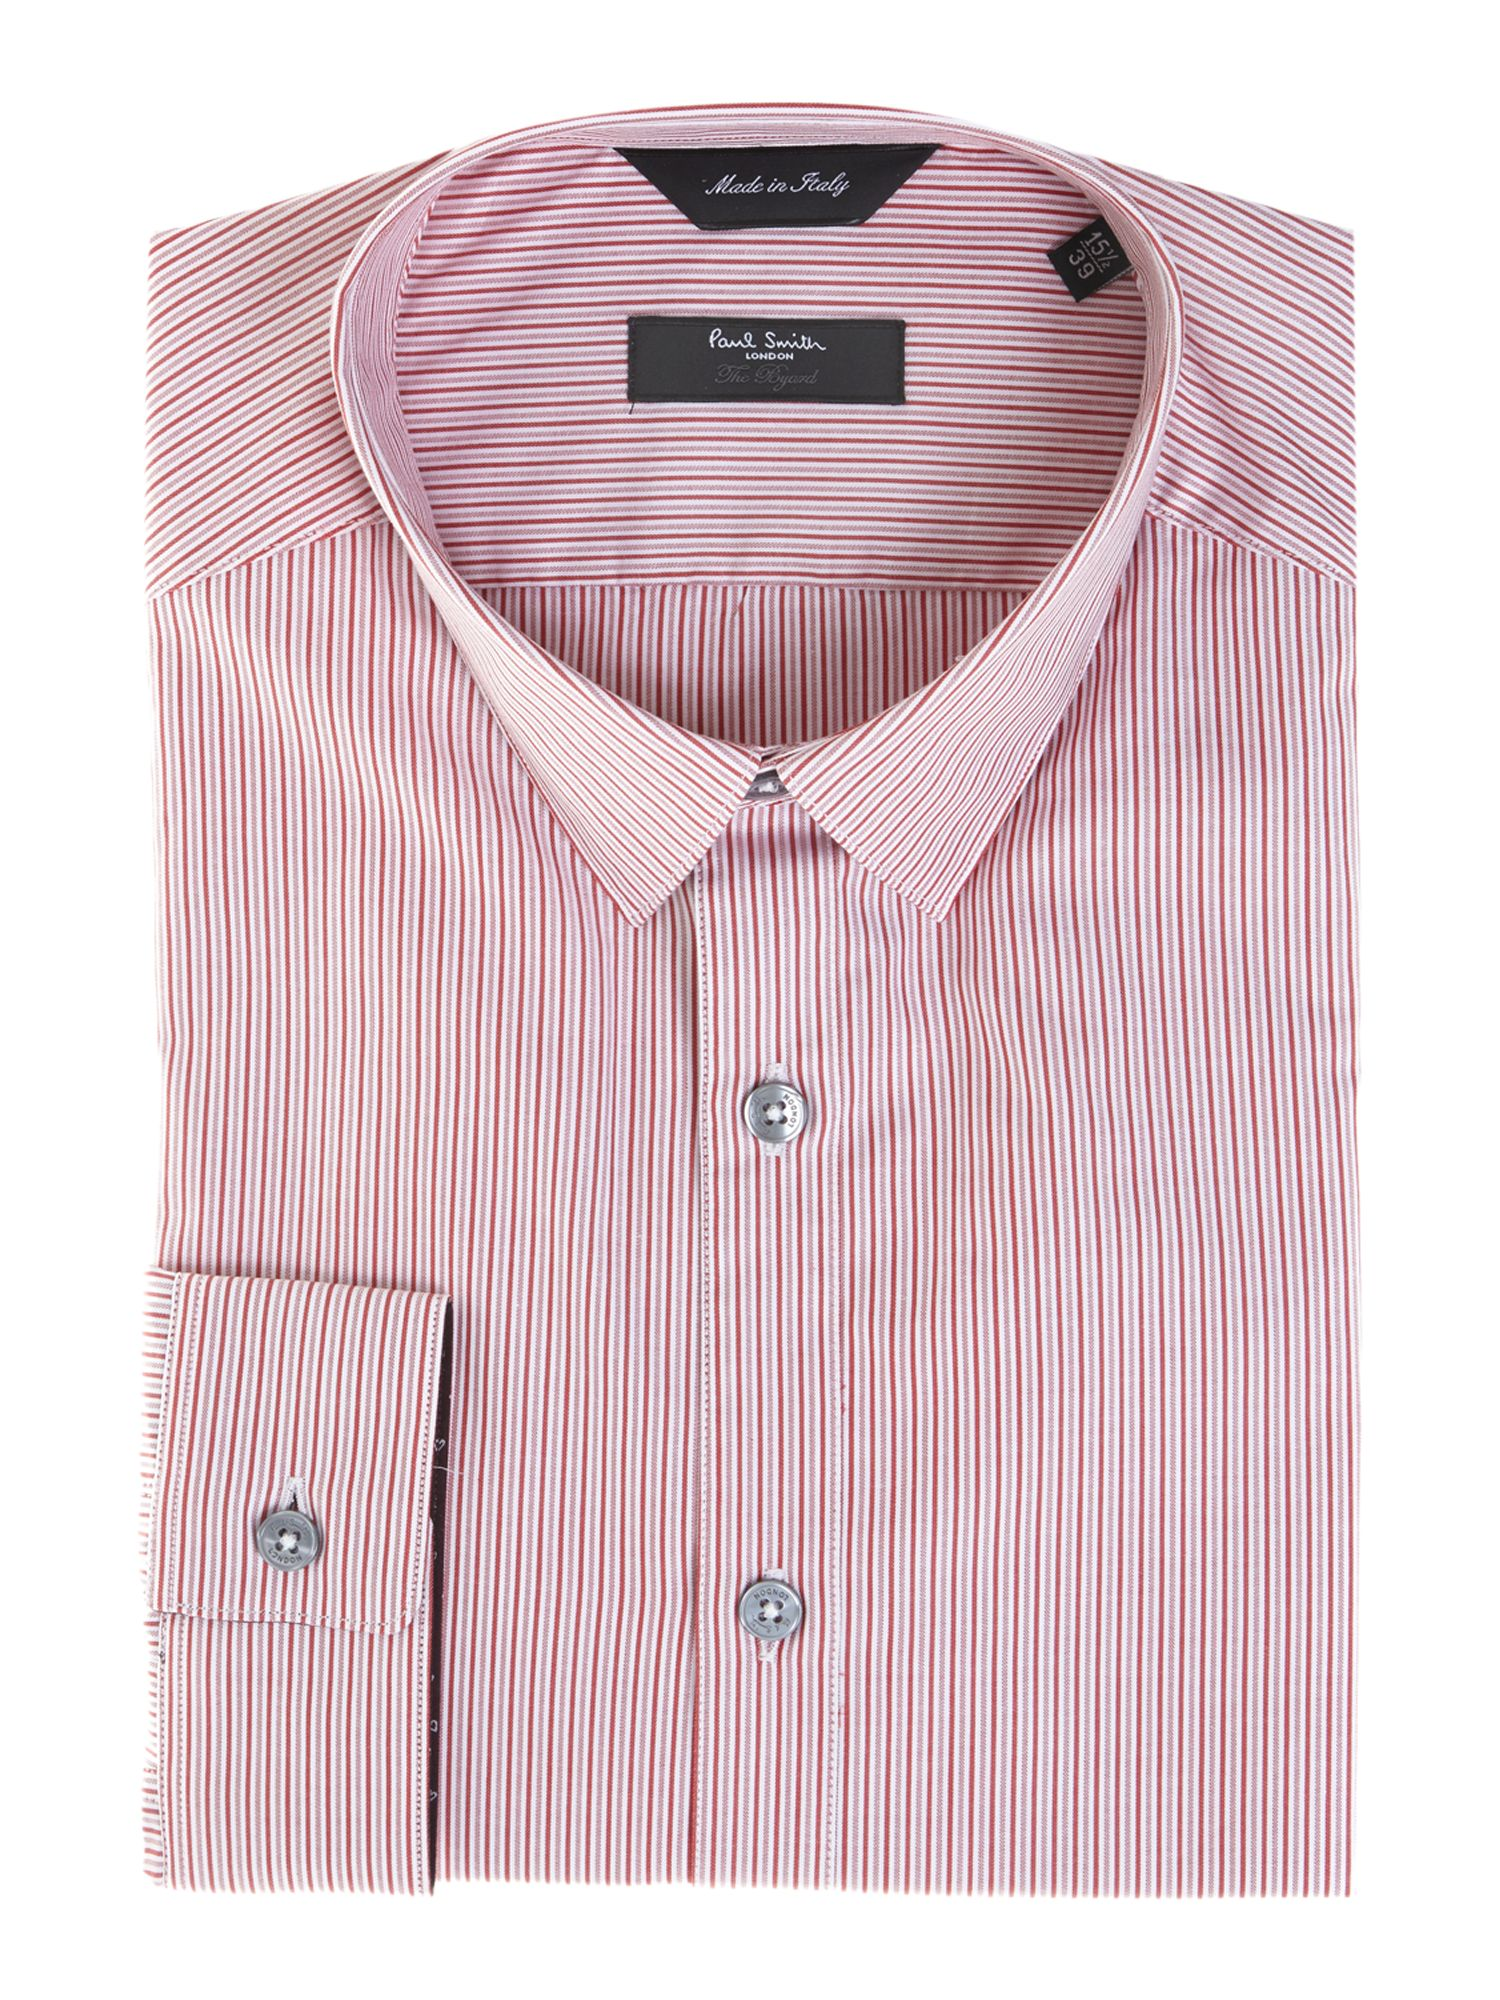 Byard fine multi stripe slim fit shirt